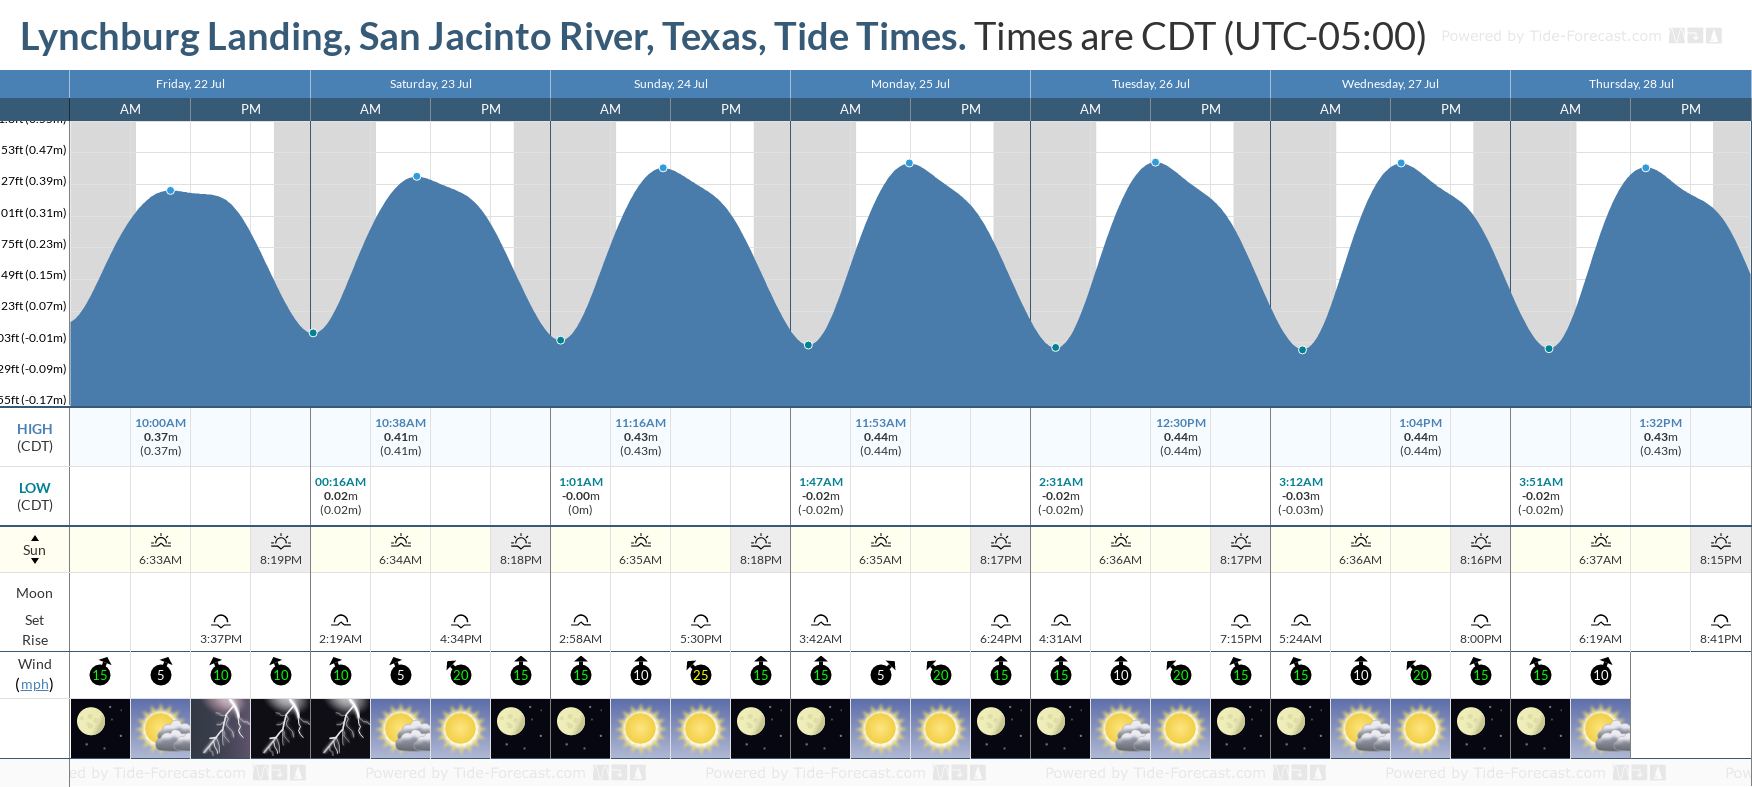 Lynchburg Landing, San Jacinto River, Texas Tide Chart including high and low tide tide times for the next 7 days